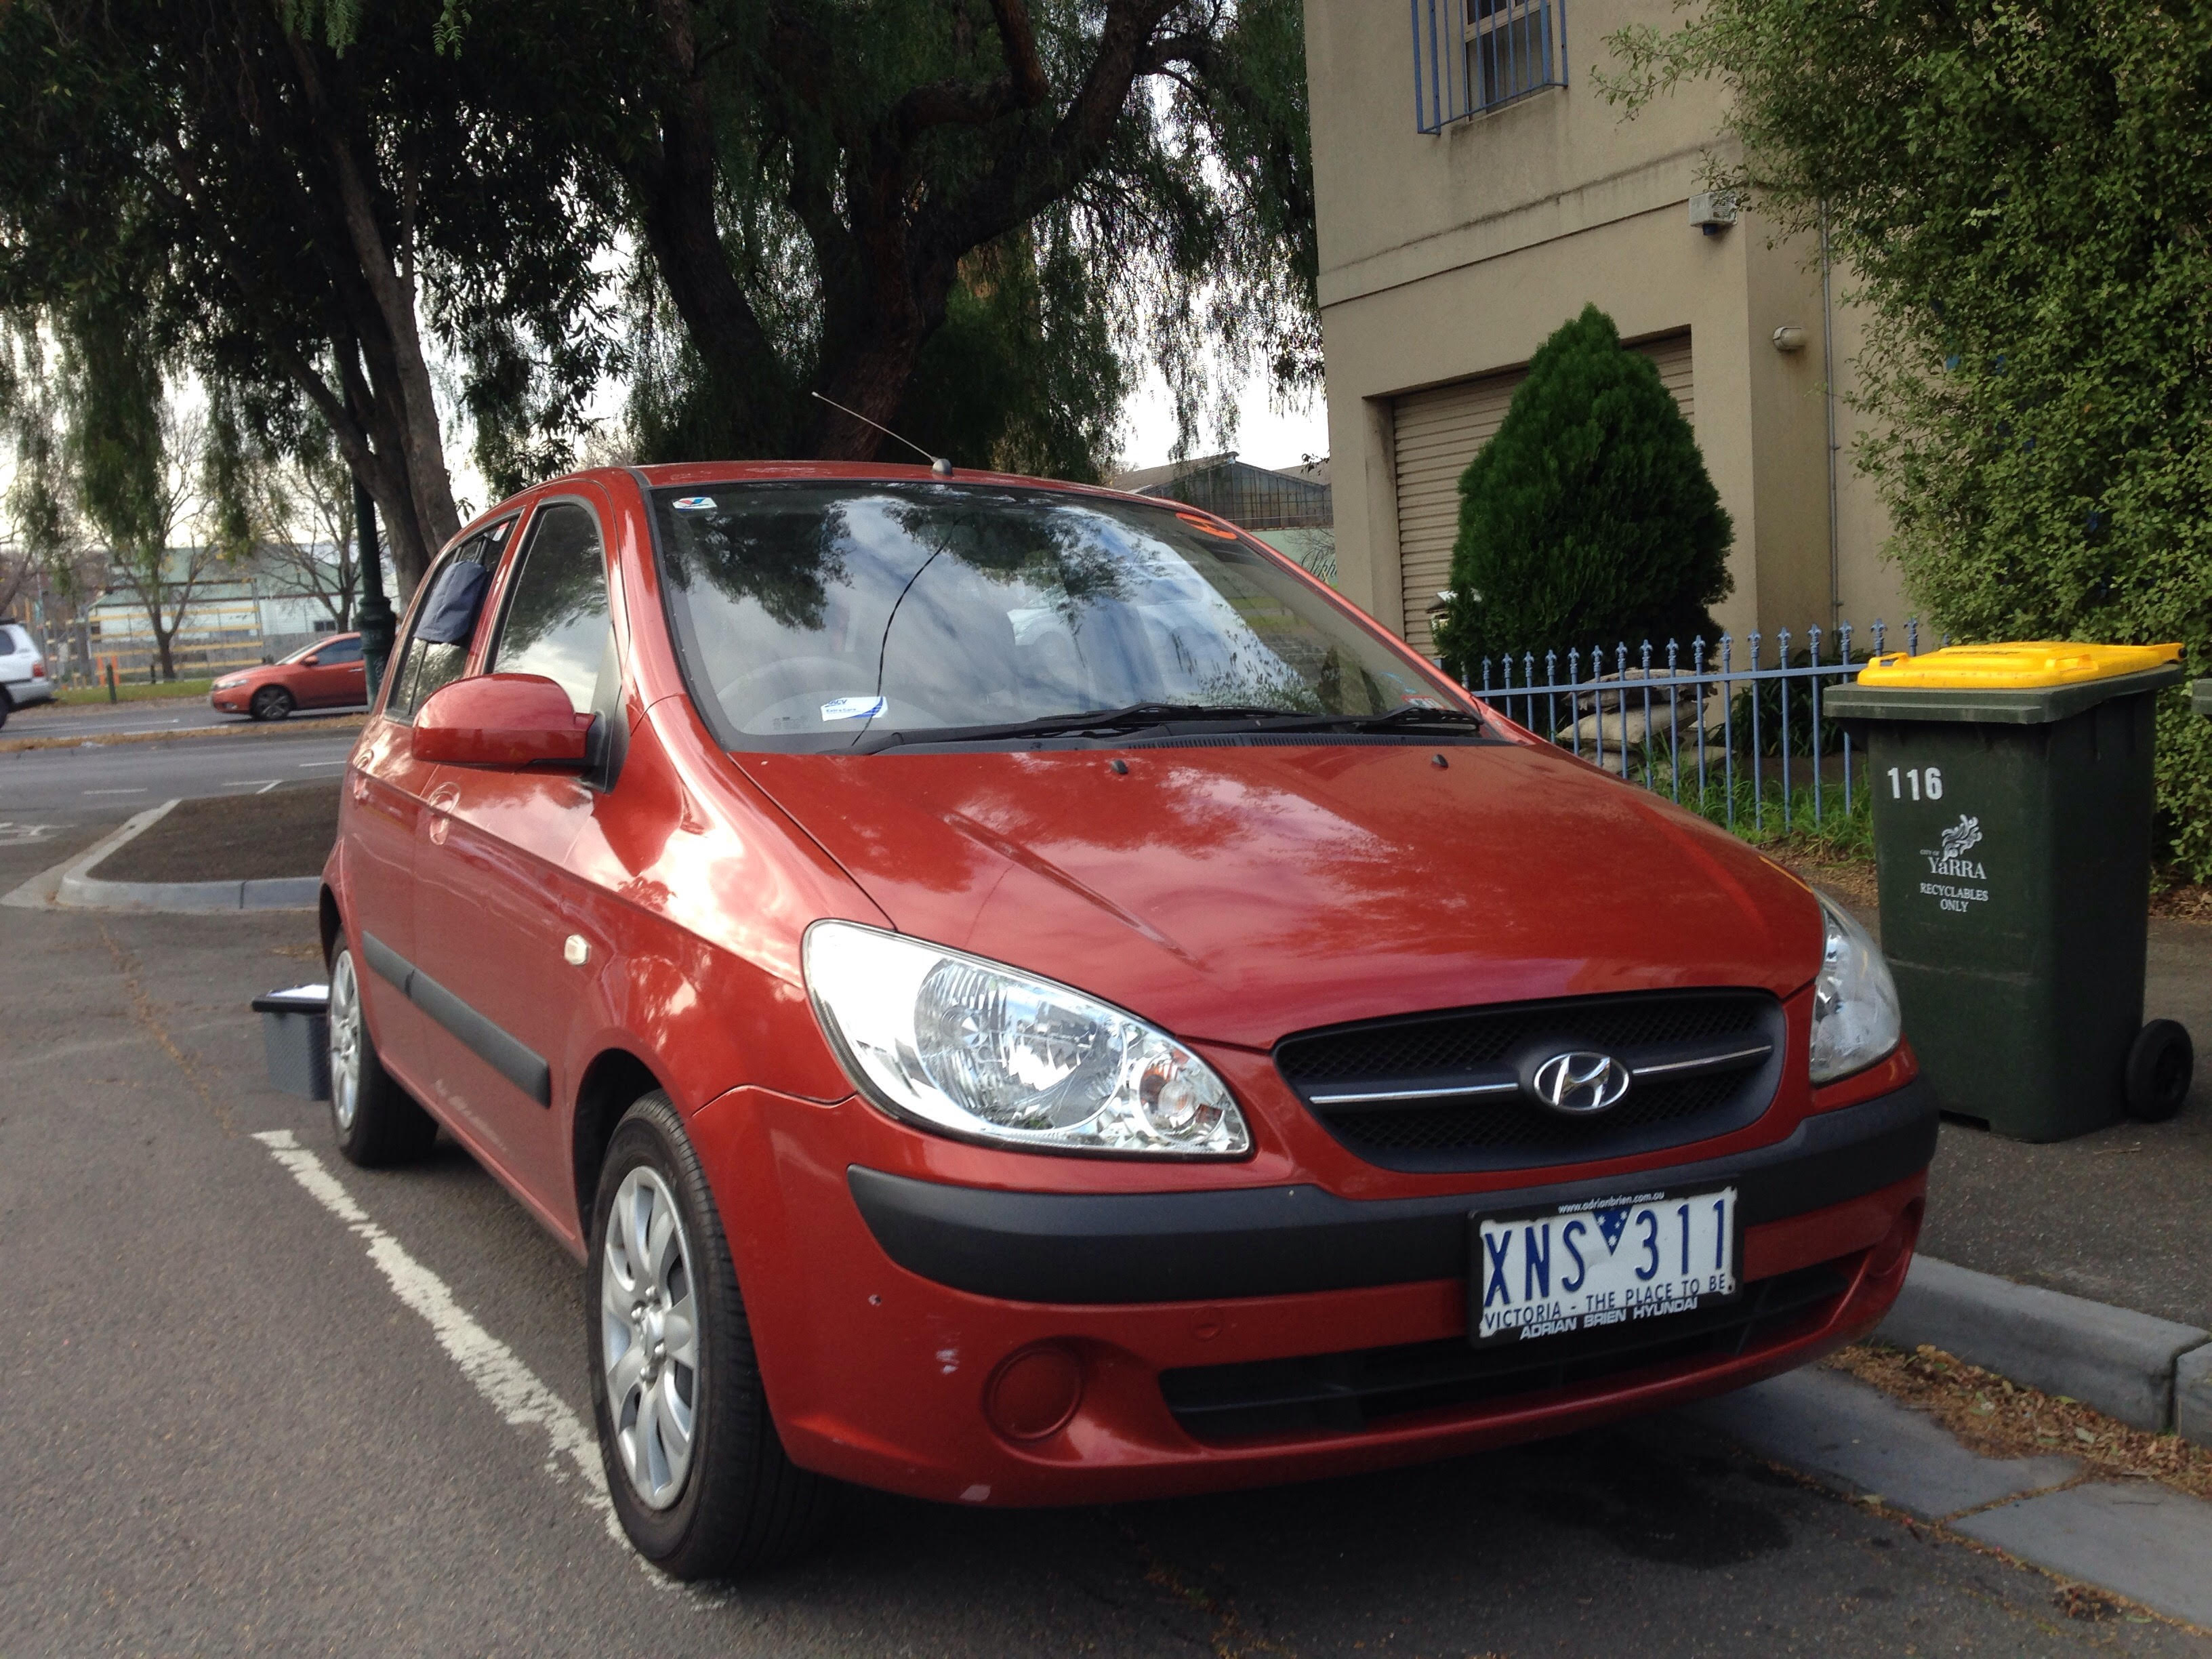 Picture of Jemma's 2008 Hyundai getz